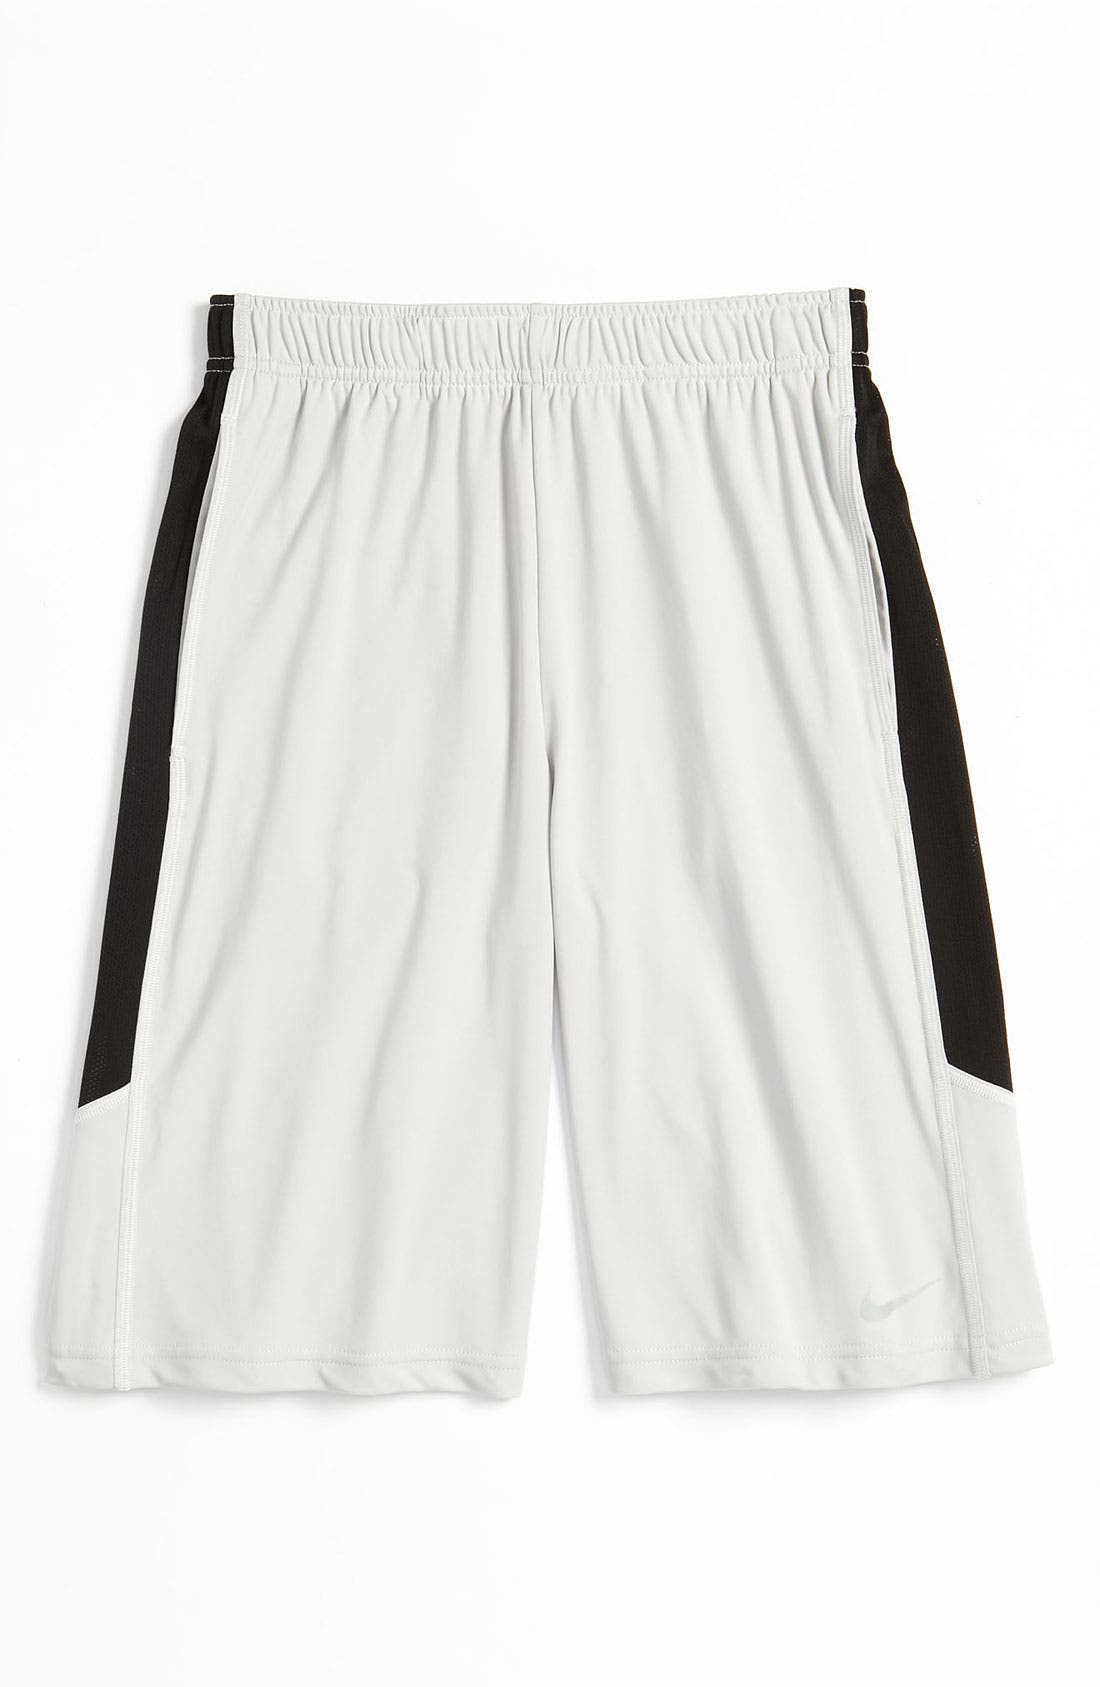 Main Image - Nike 'Lights Out' Shorts (Big Boys)